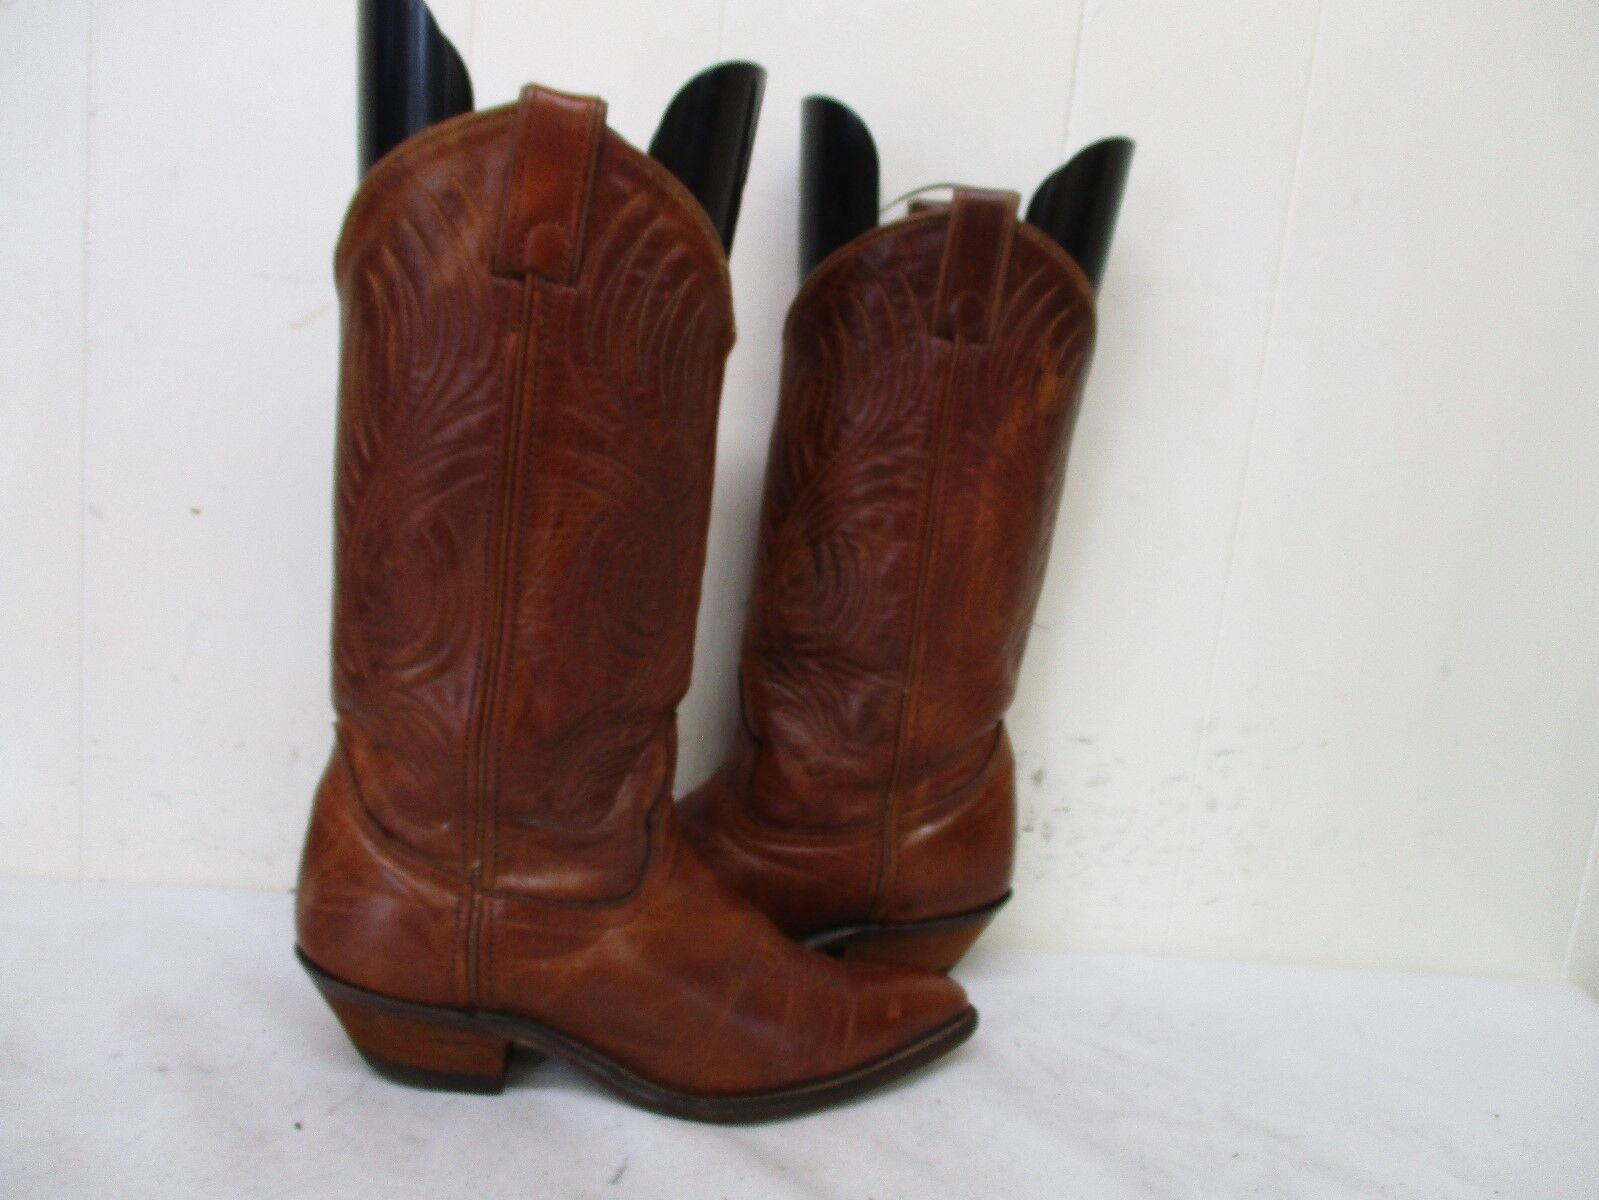 CODE WEST Brown Leather Cowboy Boots Womens Size 5.5 M Style 63695 USA